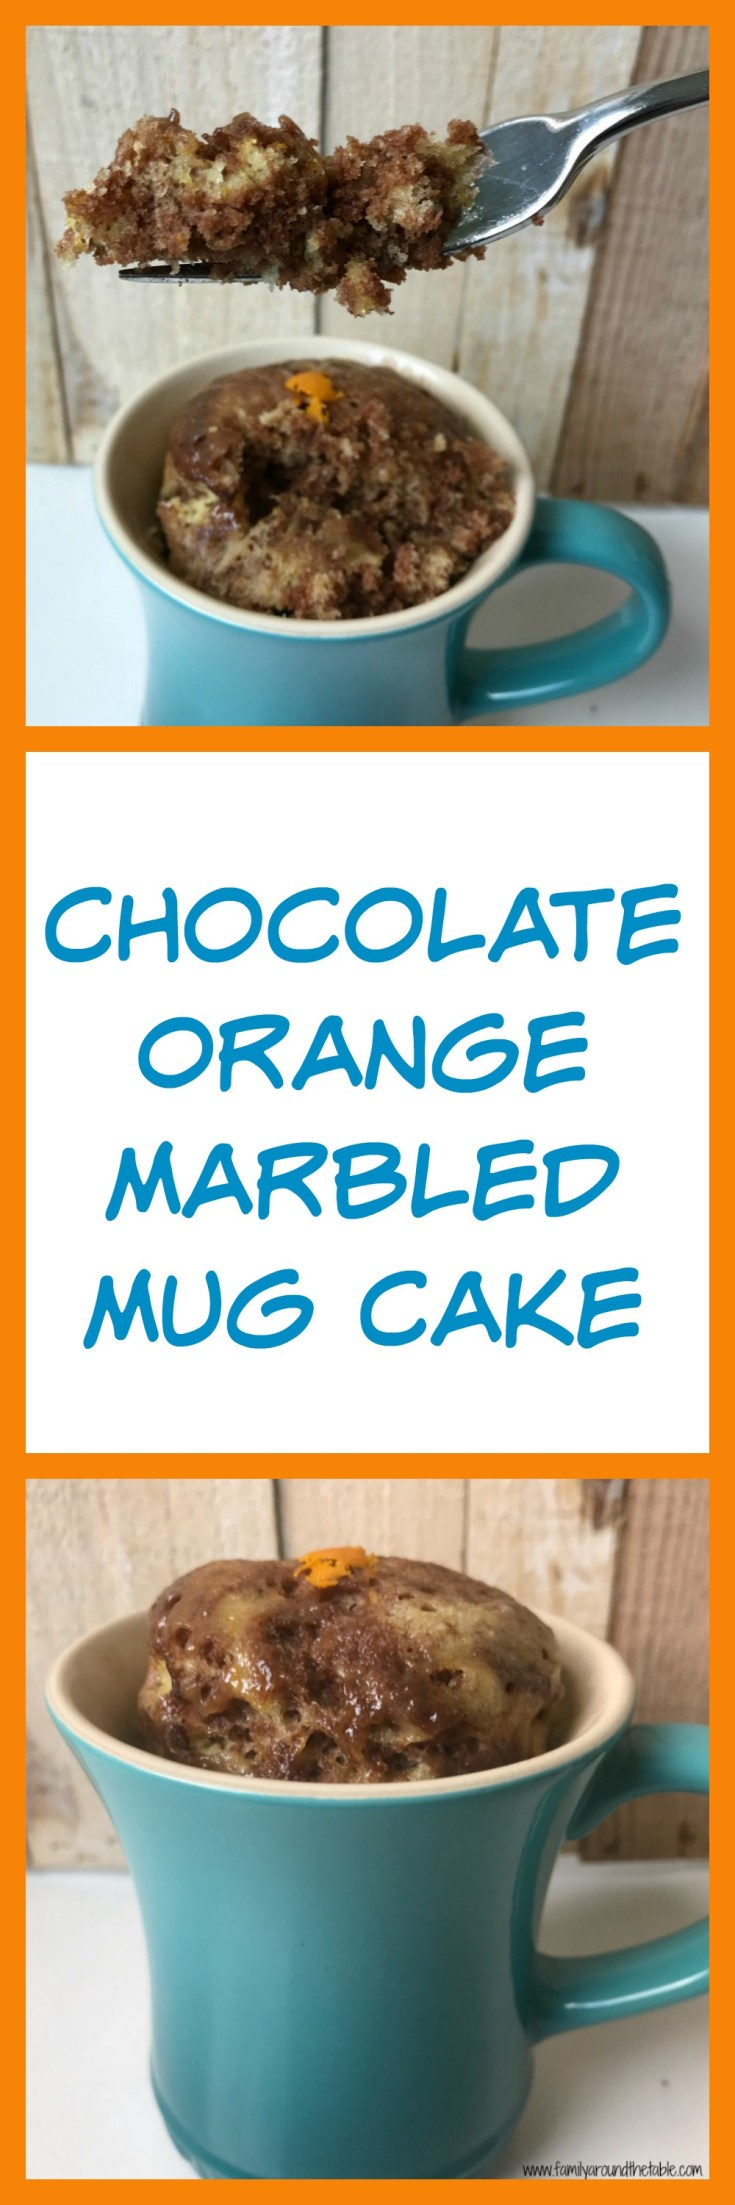 Chocolate orange marbled mug cake makes a delicious dessert when you just need a few servings.